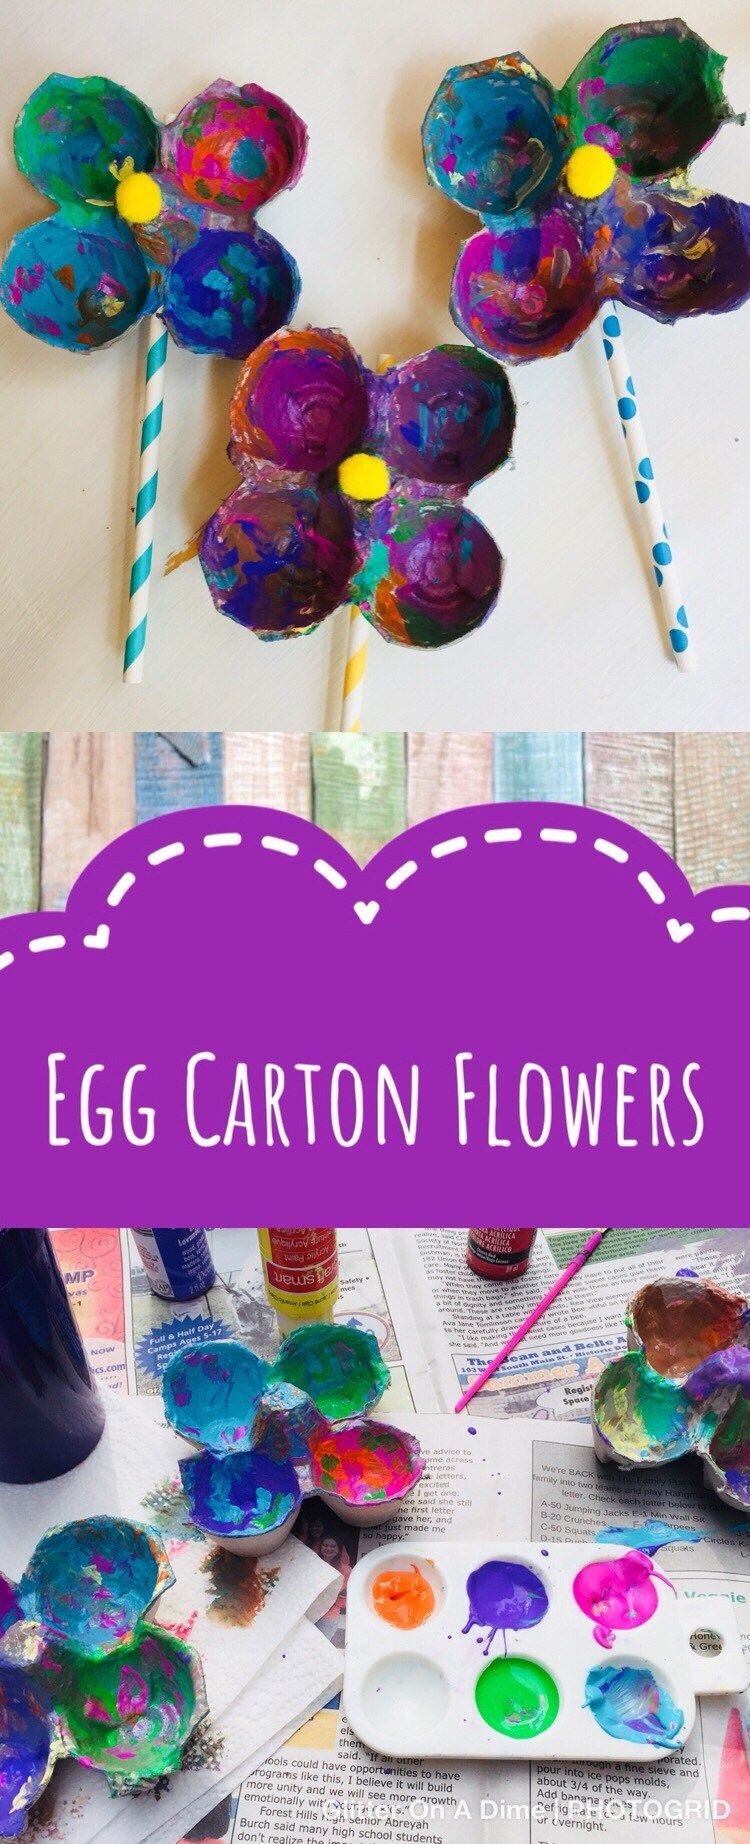 Egg carton flowers craft perfect for mothers day